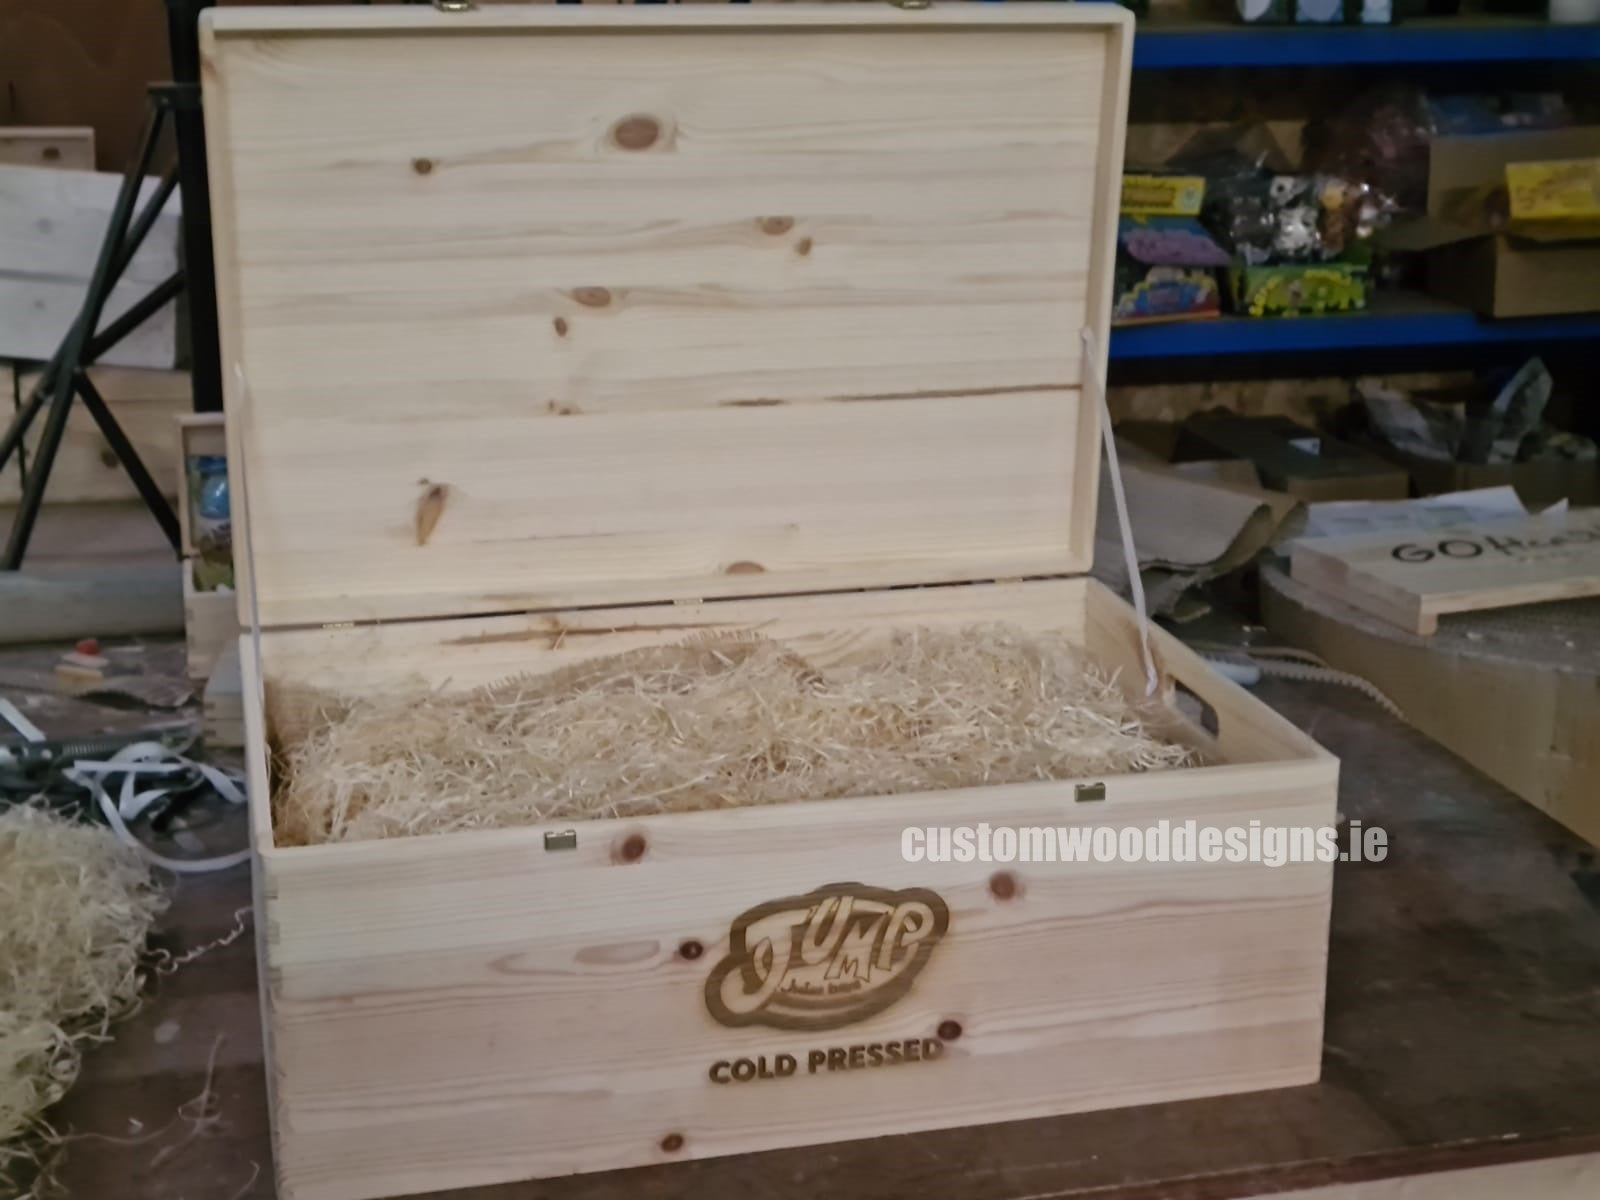 branded boxes ireland wooden boxes ireland corporate boxes corporate gift boxes solid wooden bolxes engraved wooden boxes personalised boxes ireland custom wood designs Jump Juice